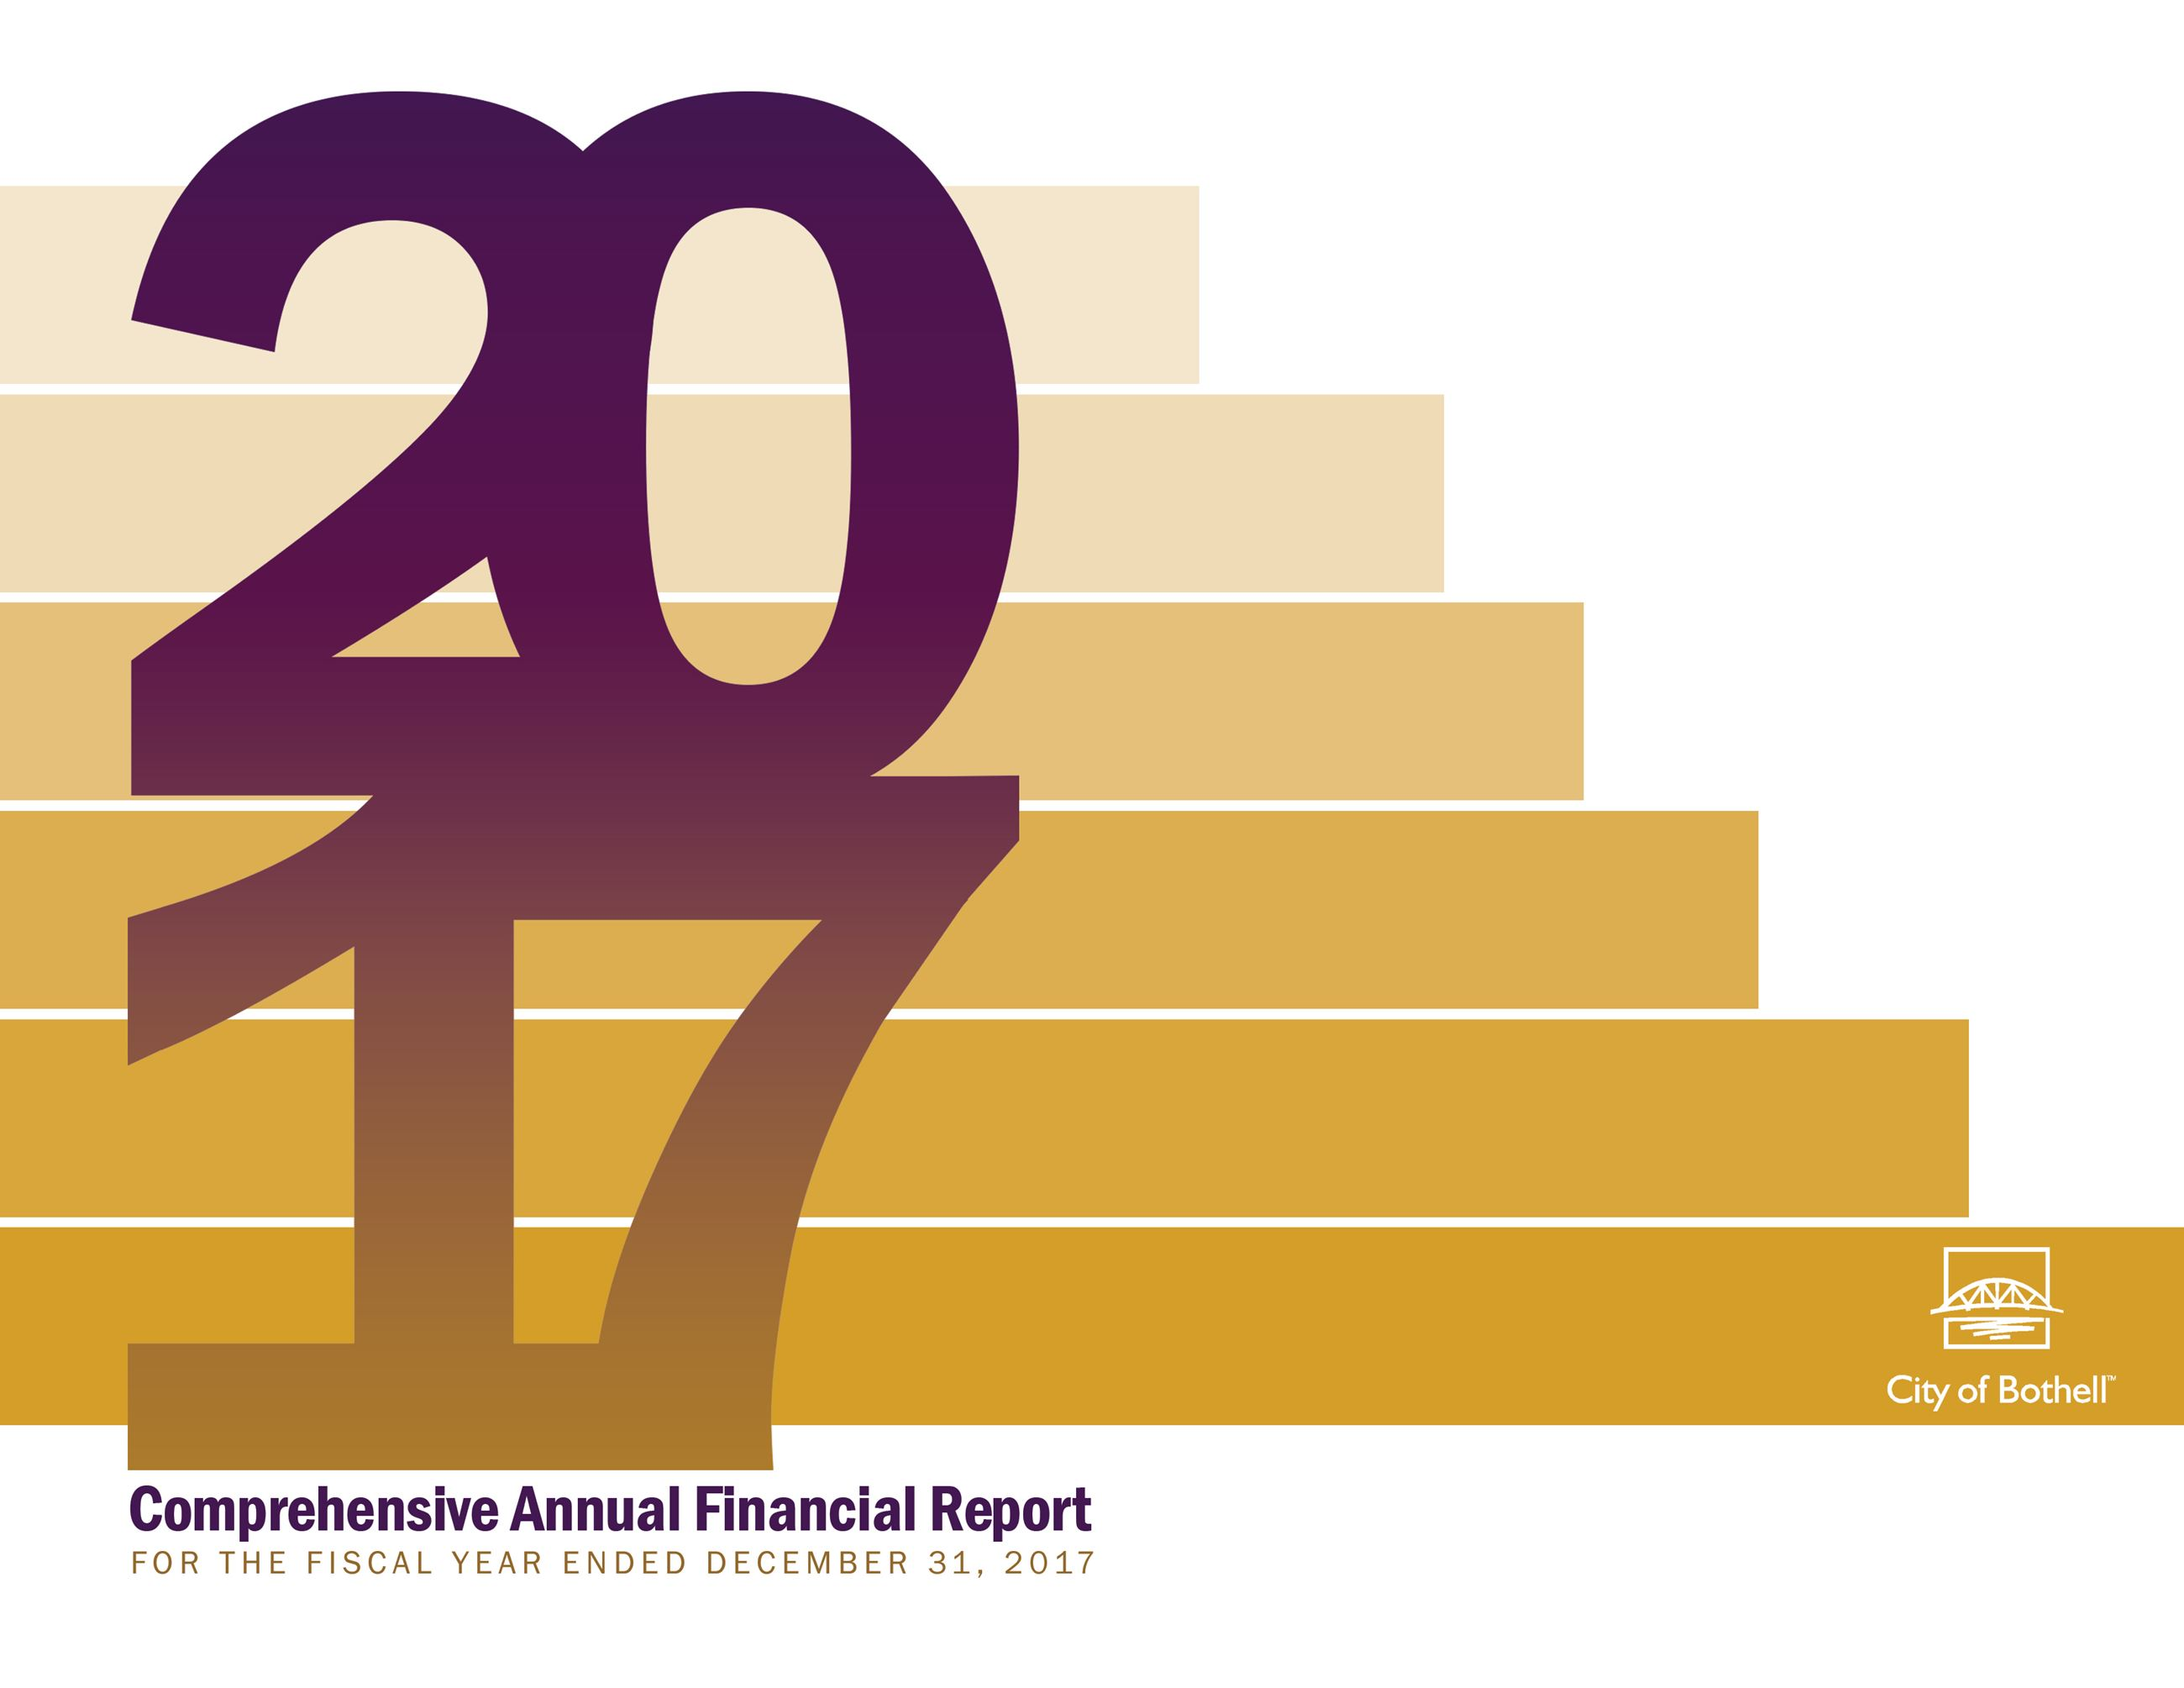 2017 Comprehensive Annual Financial Report